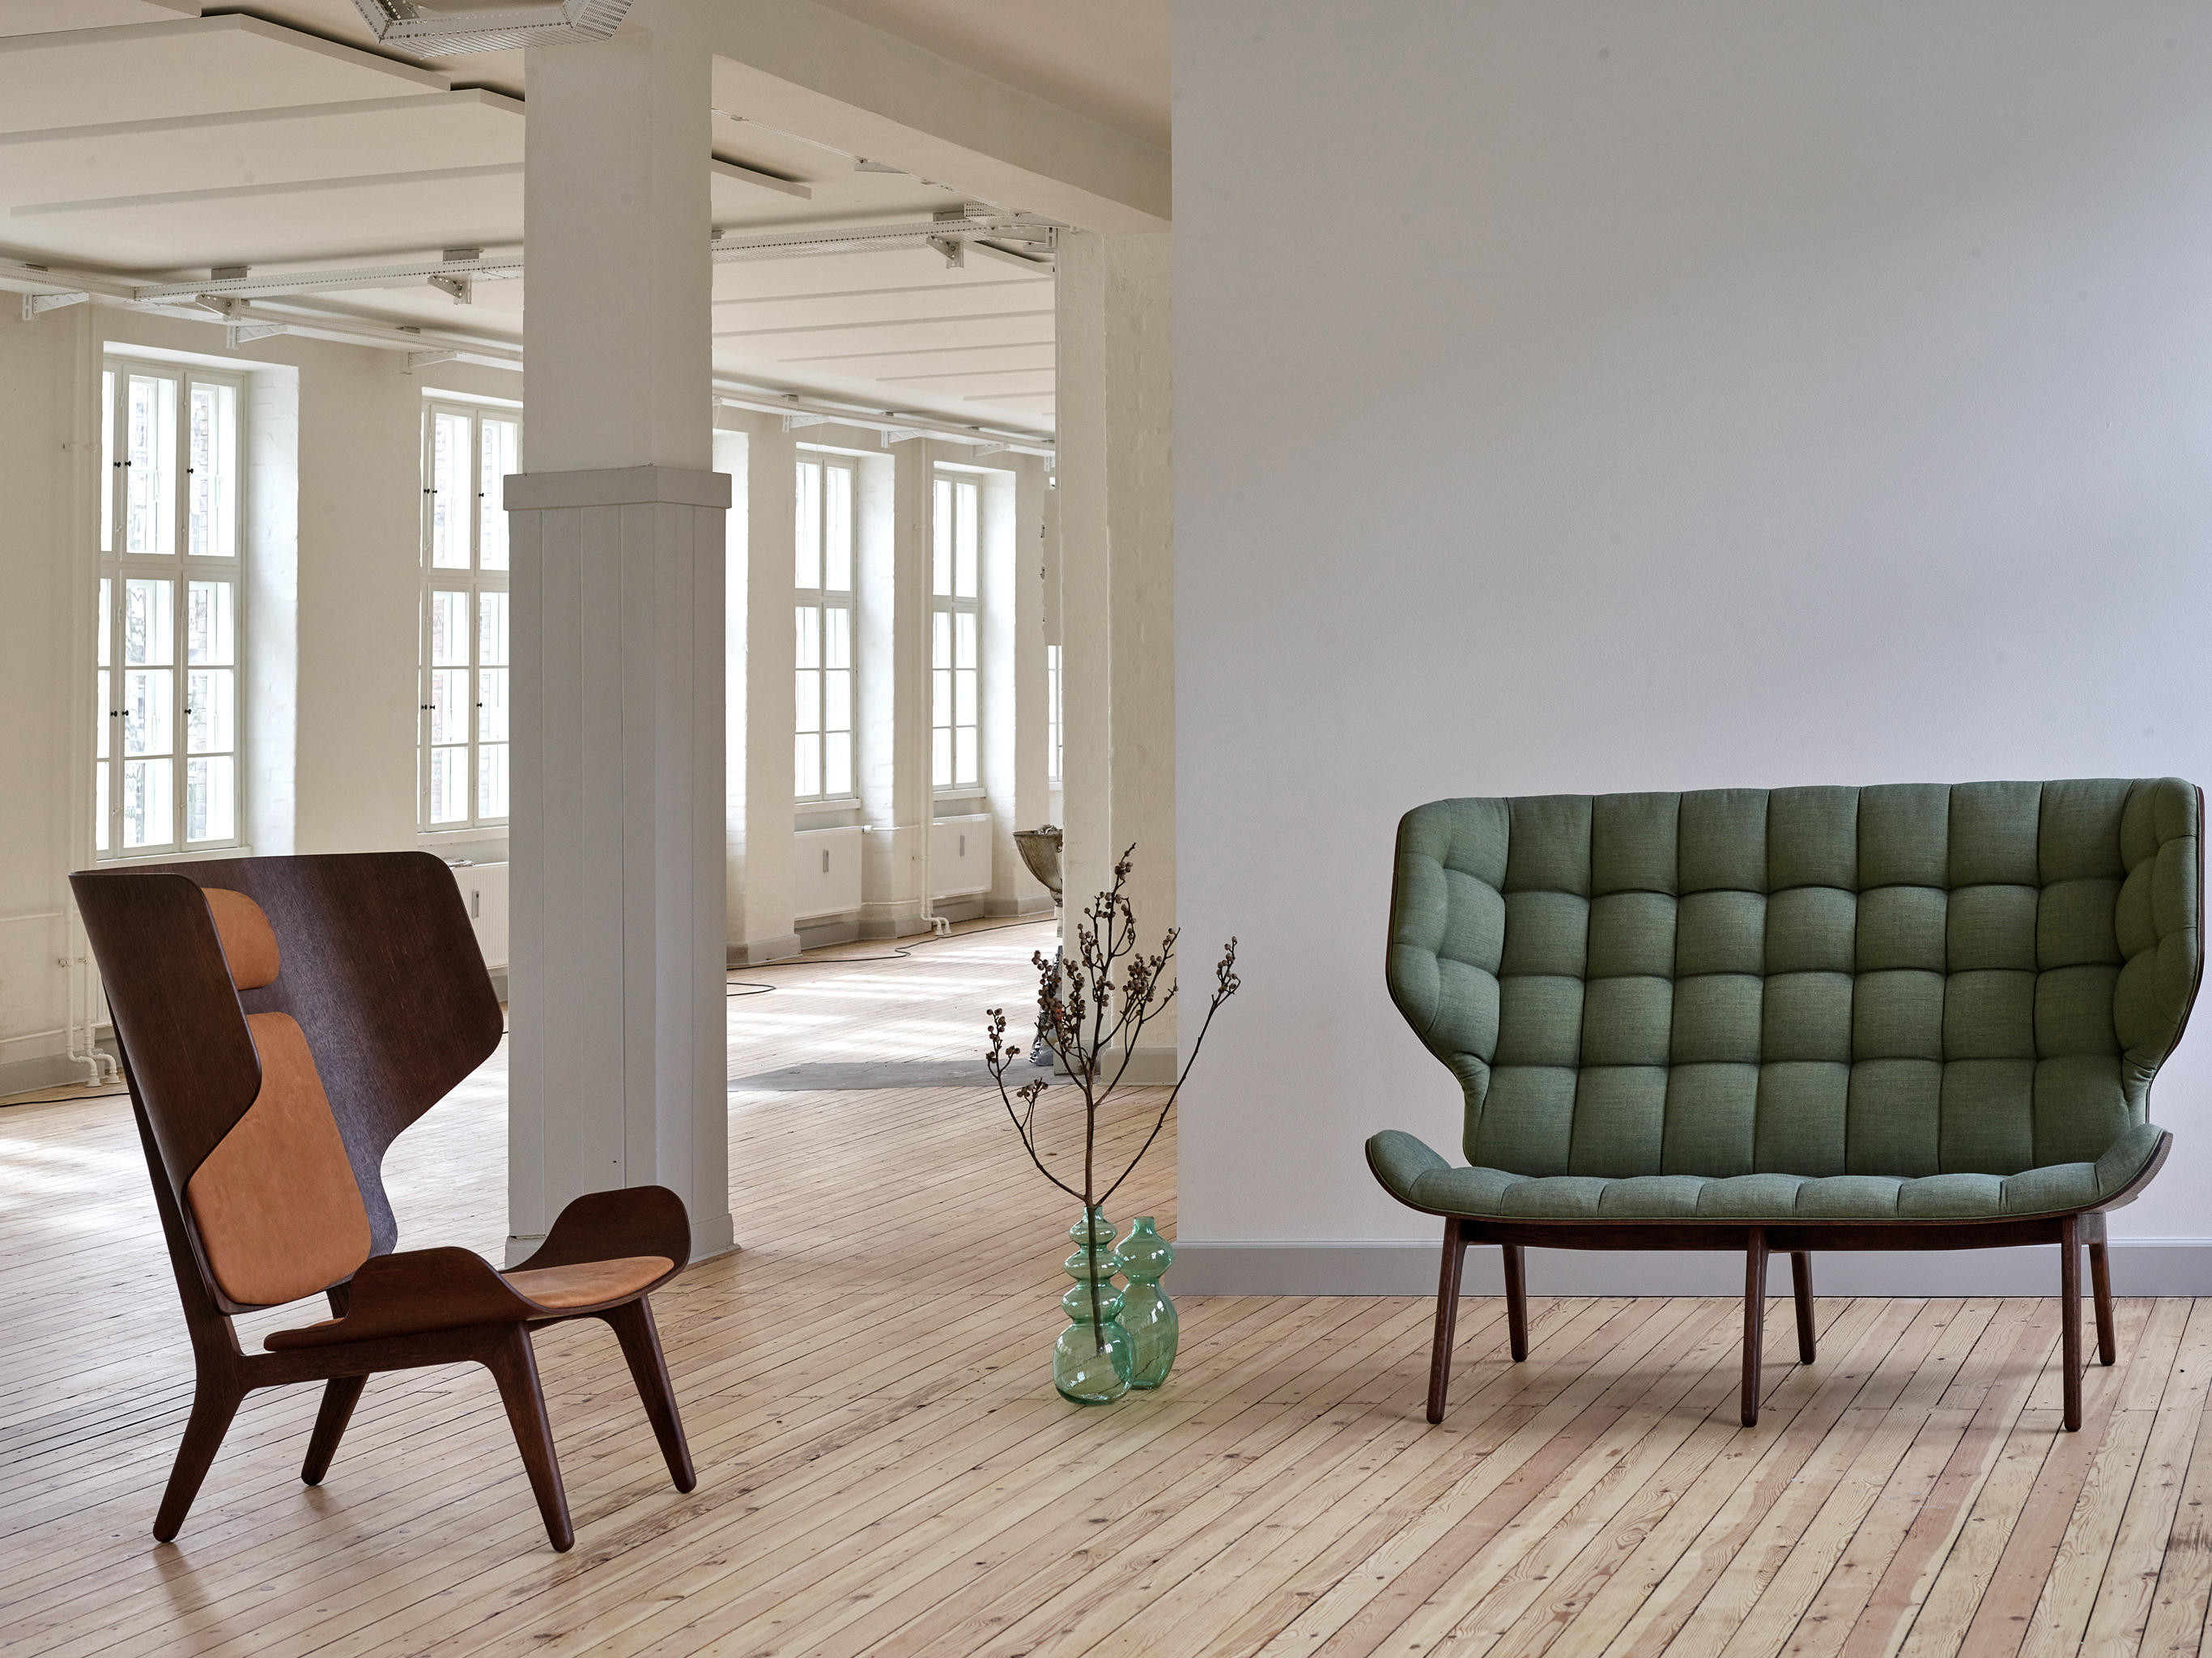 mammoth chair limited edition black fabric kvadrat basel. Black Bedroom Furniture Sets. Home Design Ideas